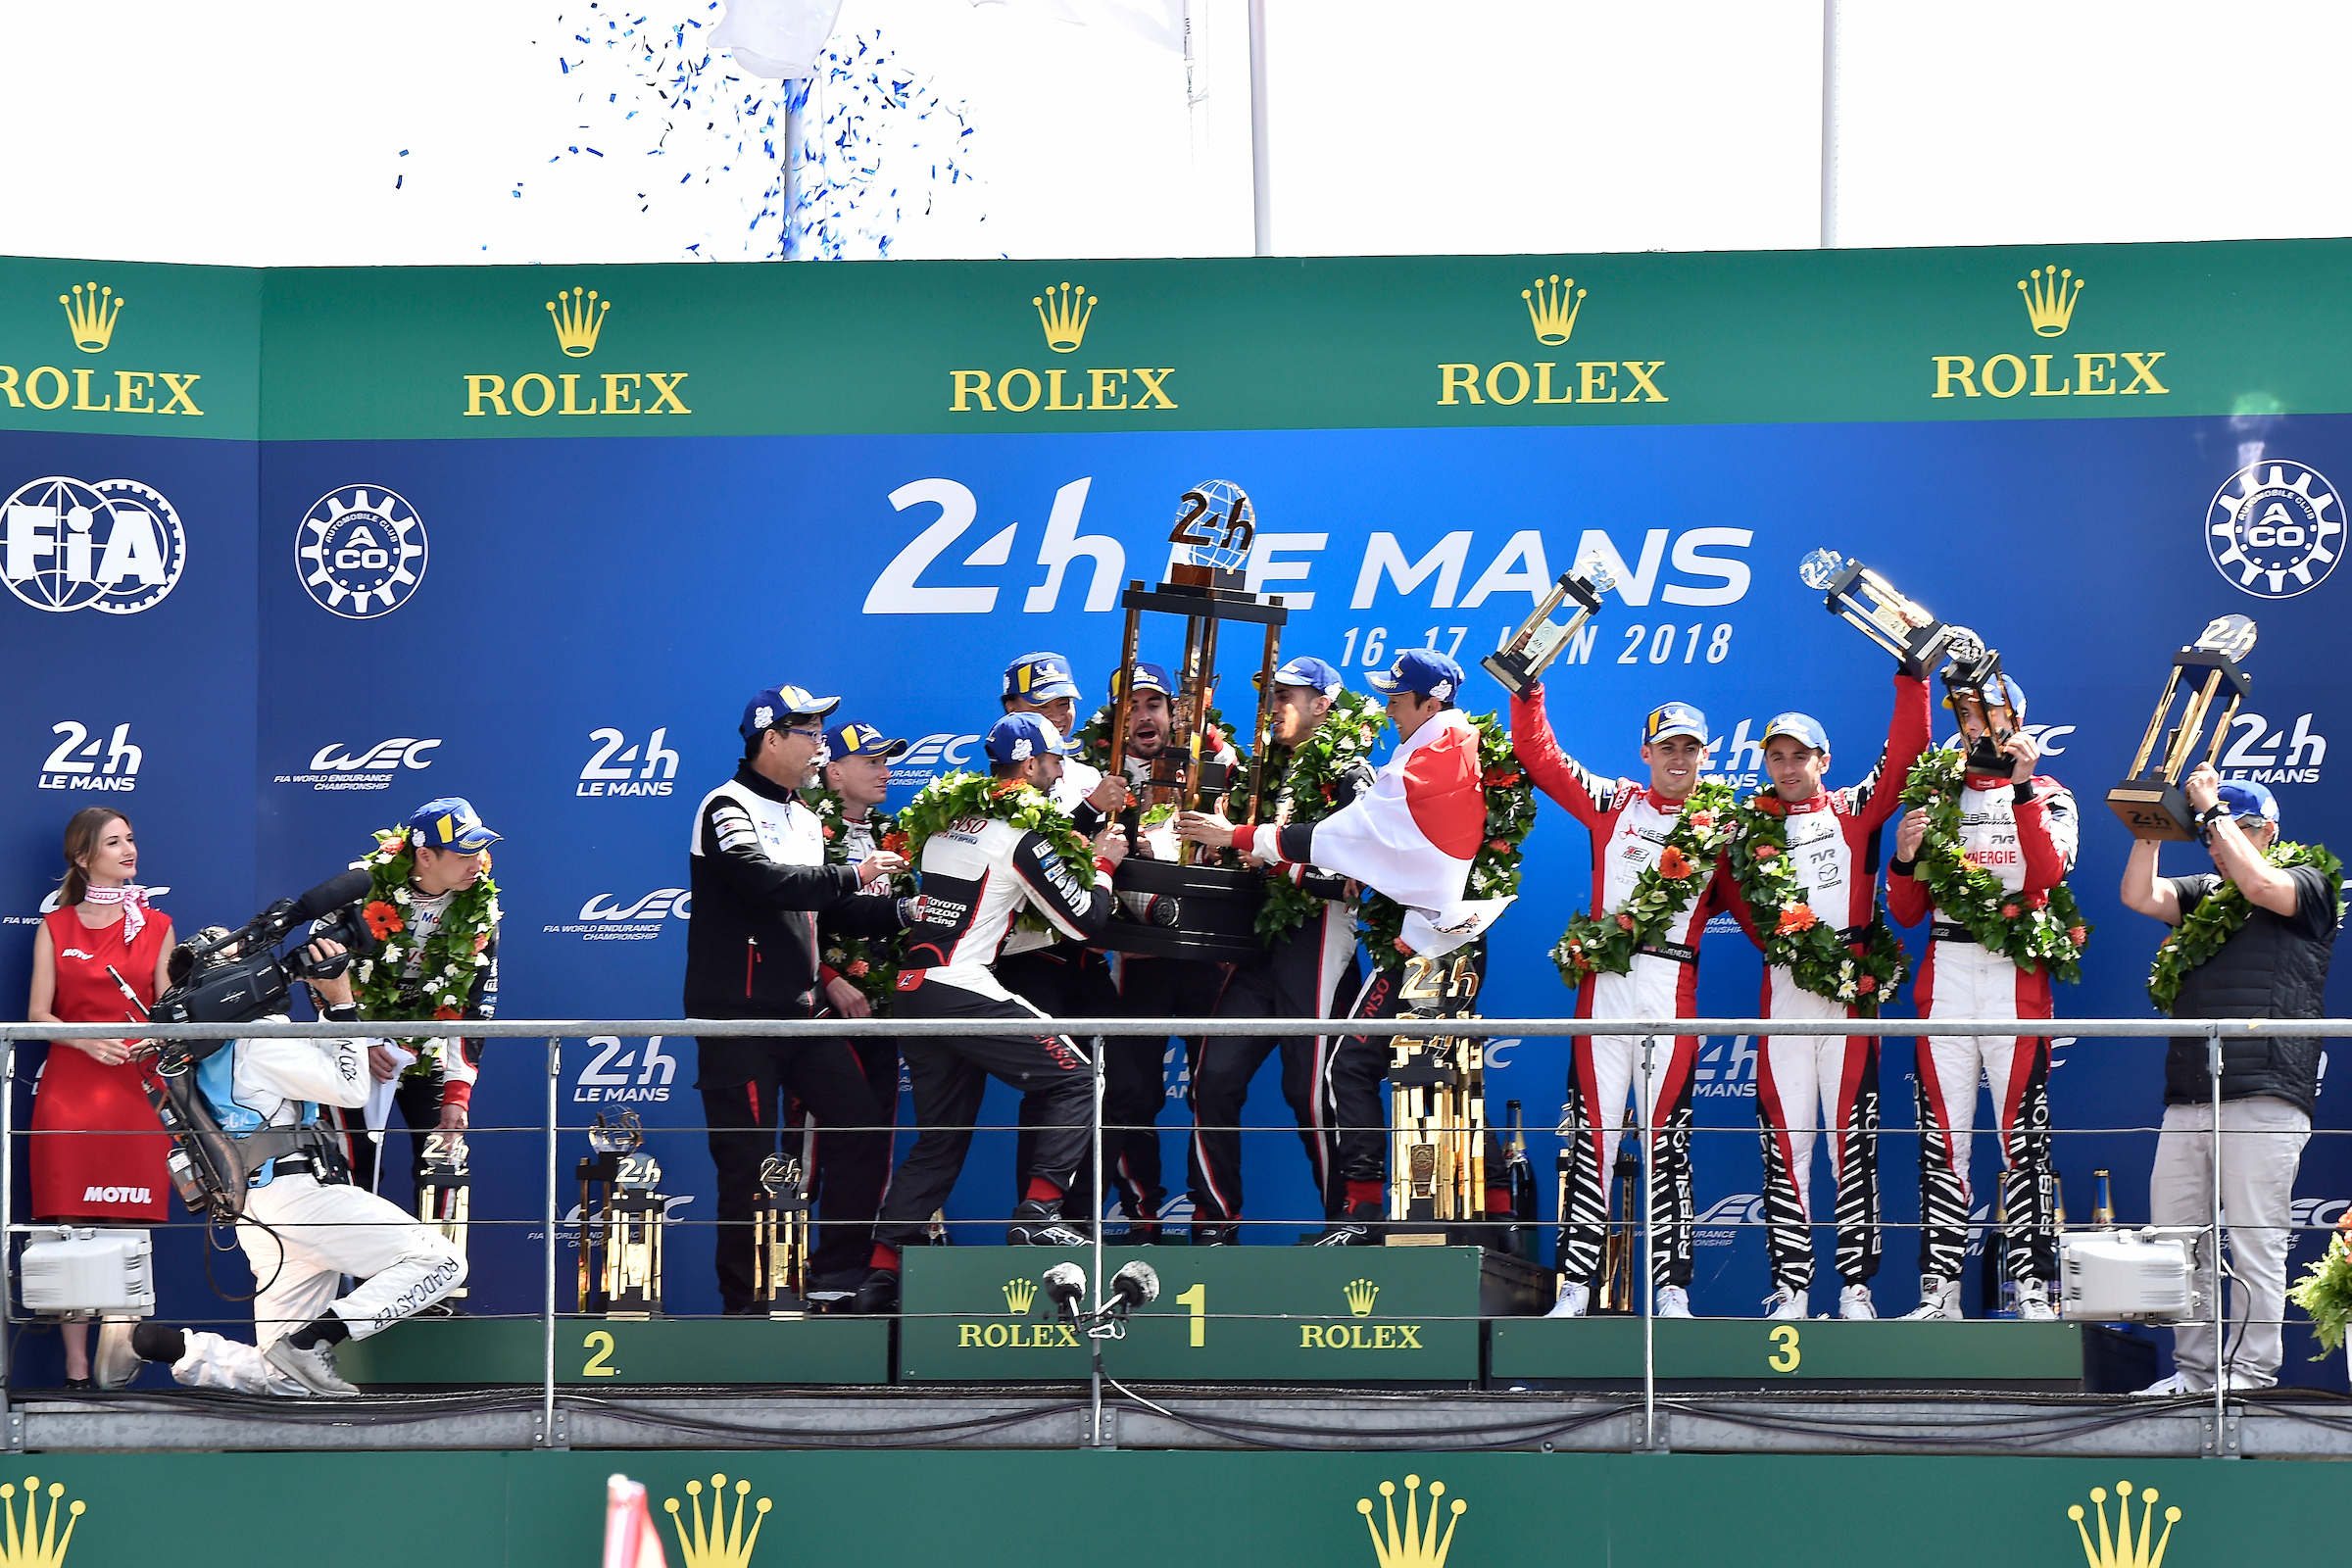 Video: Le Mans Race Recap